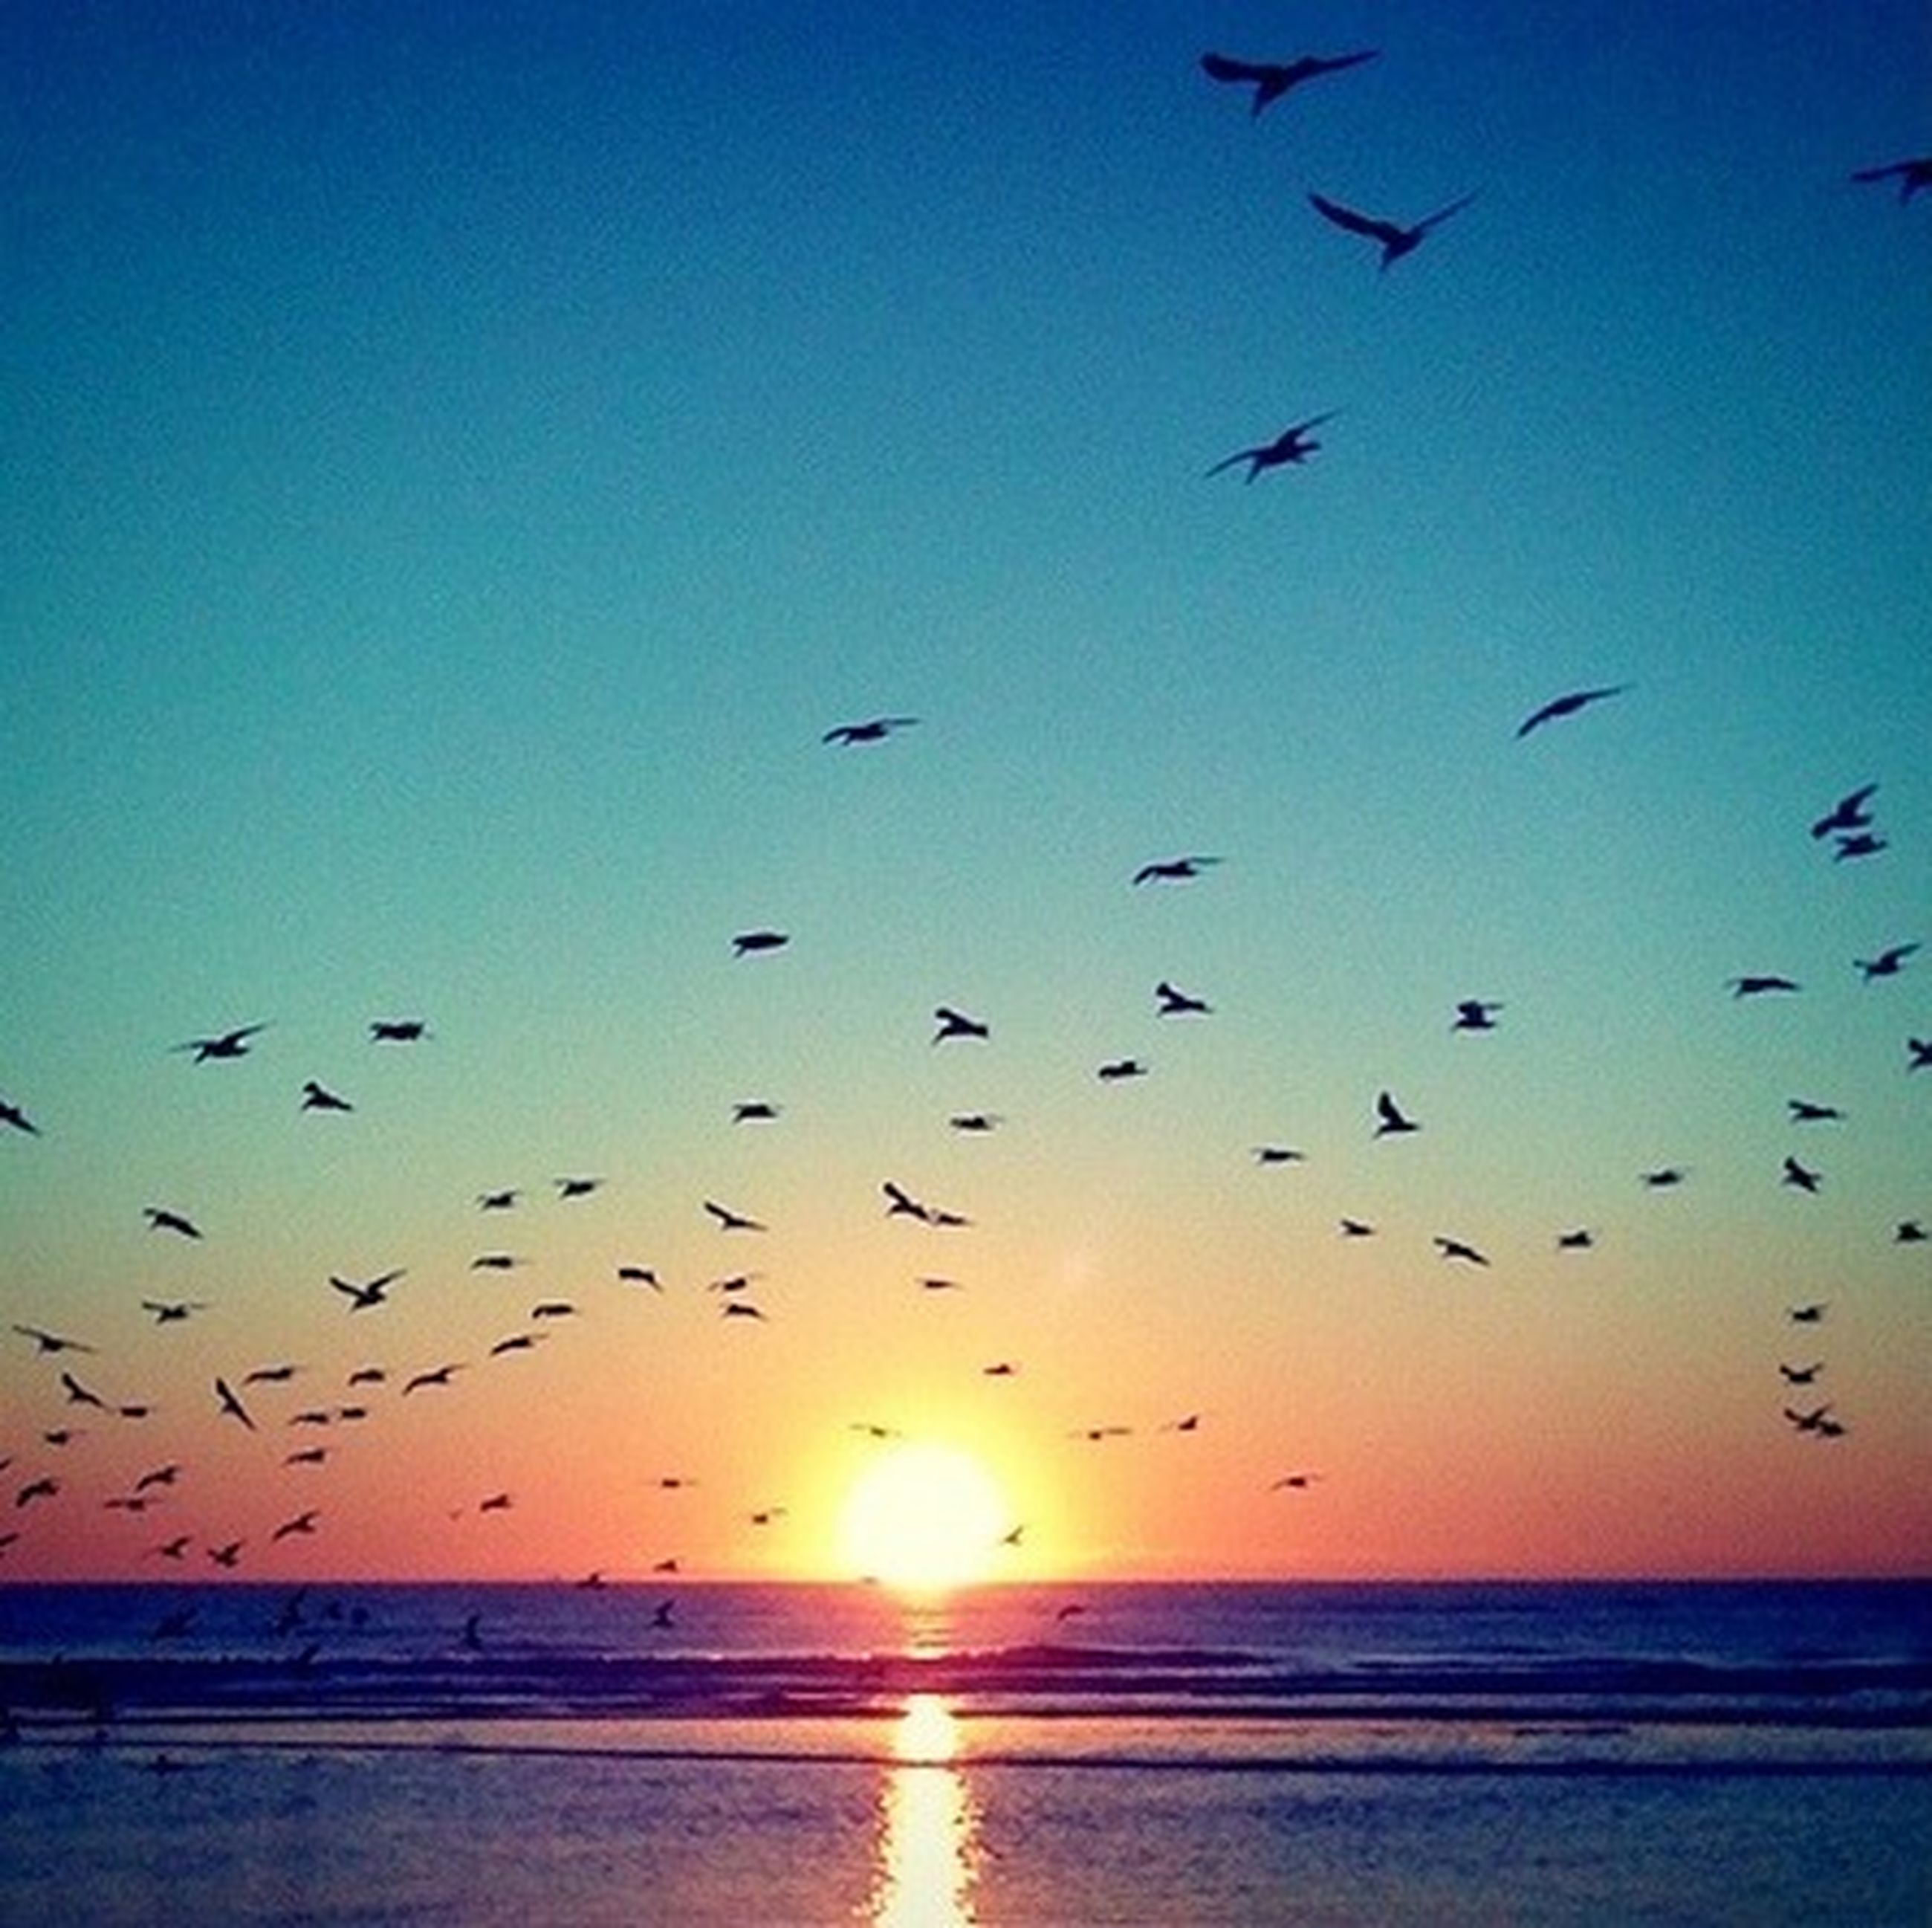 bird, sunset, flying, animal themes, water, sea, animals in the wild, wildlife, horizon over water, flock of birds, sun, sky, scenics, beauty in nature, beach, tranquil scene, silhouette, nature, tranquility